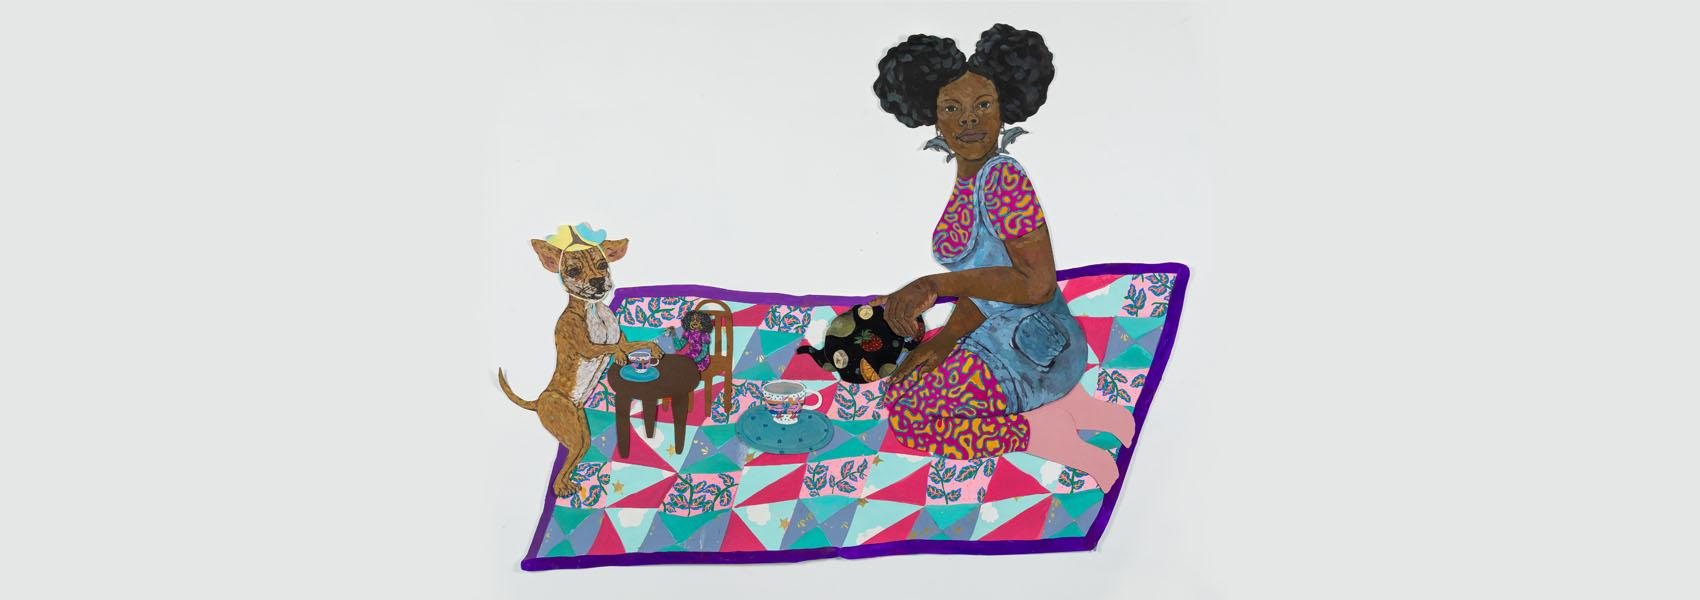 Artwork by the winners of the 2019 Mary L. Nohl Fund Fellowships at the Haggerty Museum of Art at Marquette University.